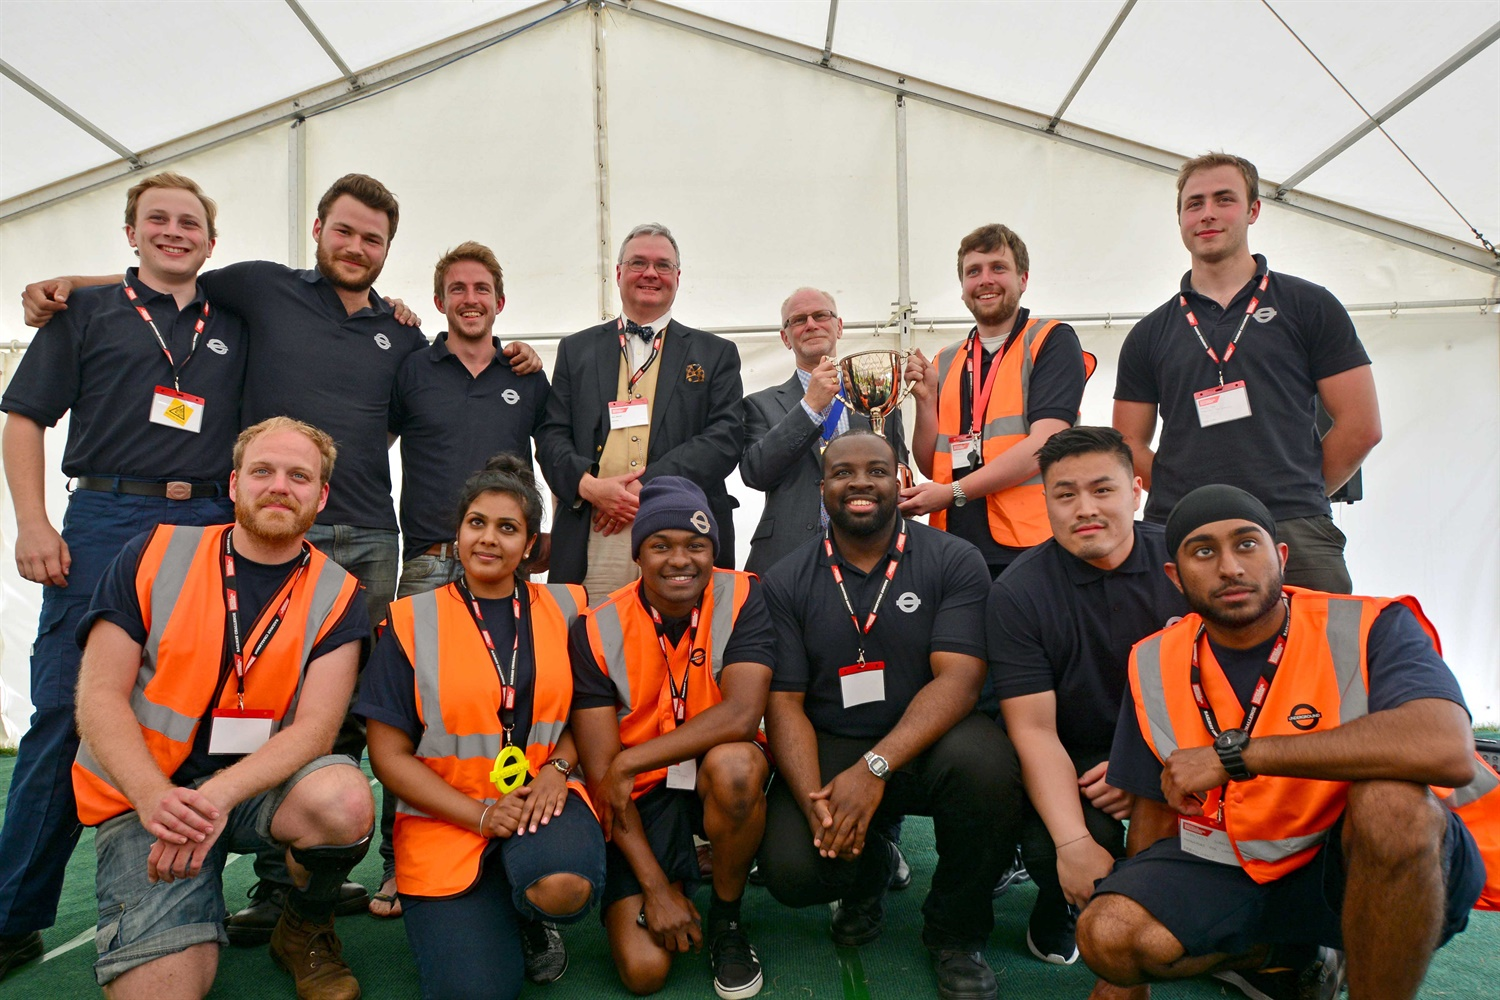 TFL team with Bill Reeve and IMechE President courtesy of David Shirres